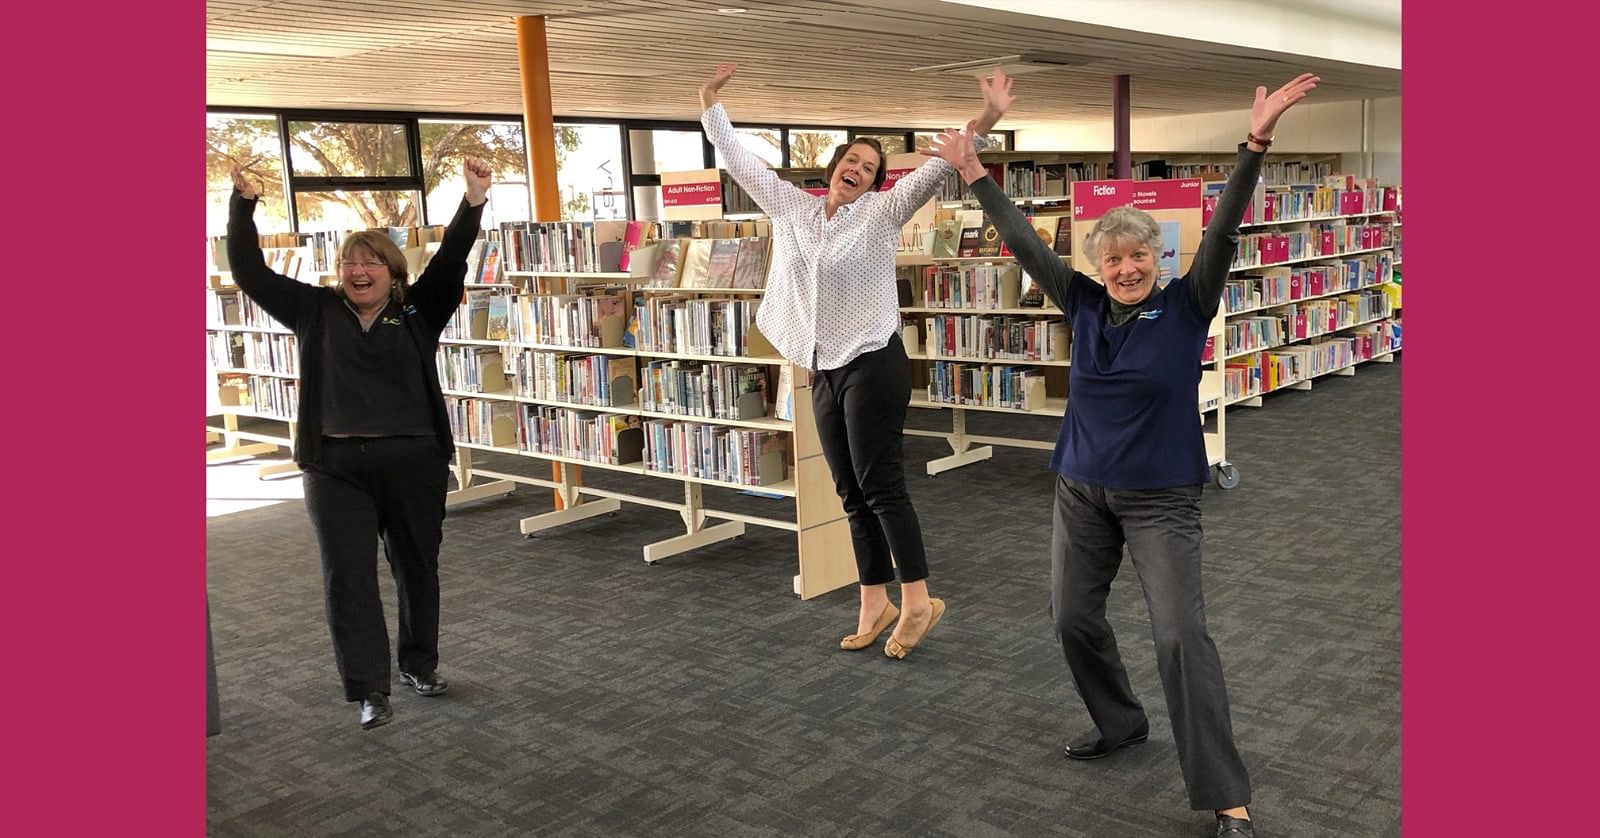 Photo: Vicki Buckley, Jayde Timms and Anne Moore from Bega Valley Library Service are jumping for joy as COVID-19 restrictions ease and libraries reopen from 15 June.